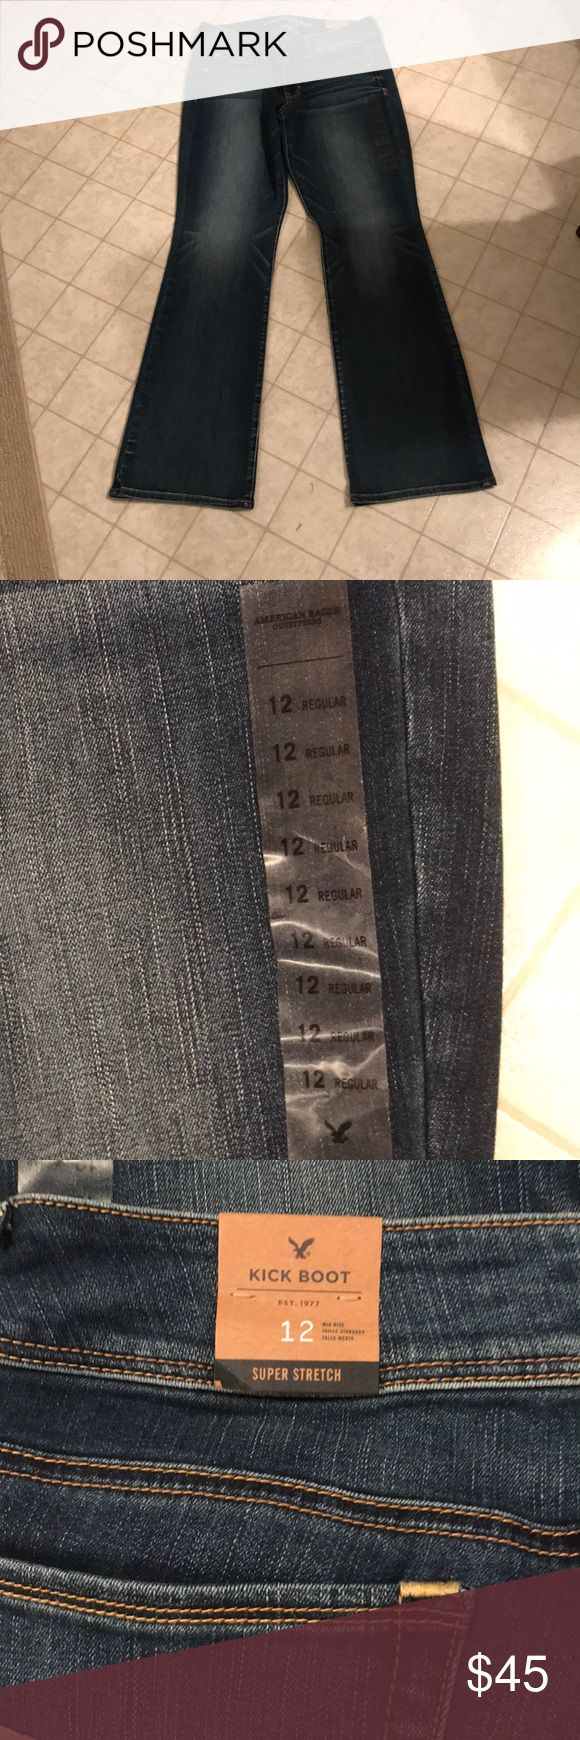 American Eagle super stretch kick boot jeans Brand new with tags attached, 12R American Eagle Outfitters Jeans Boot Cut